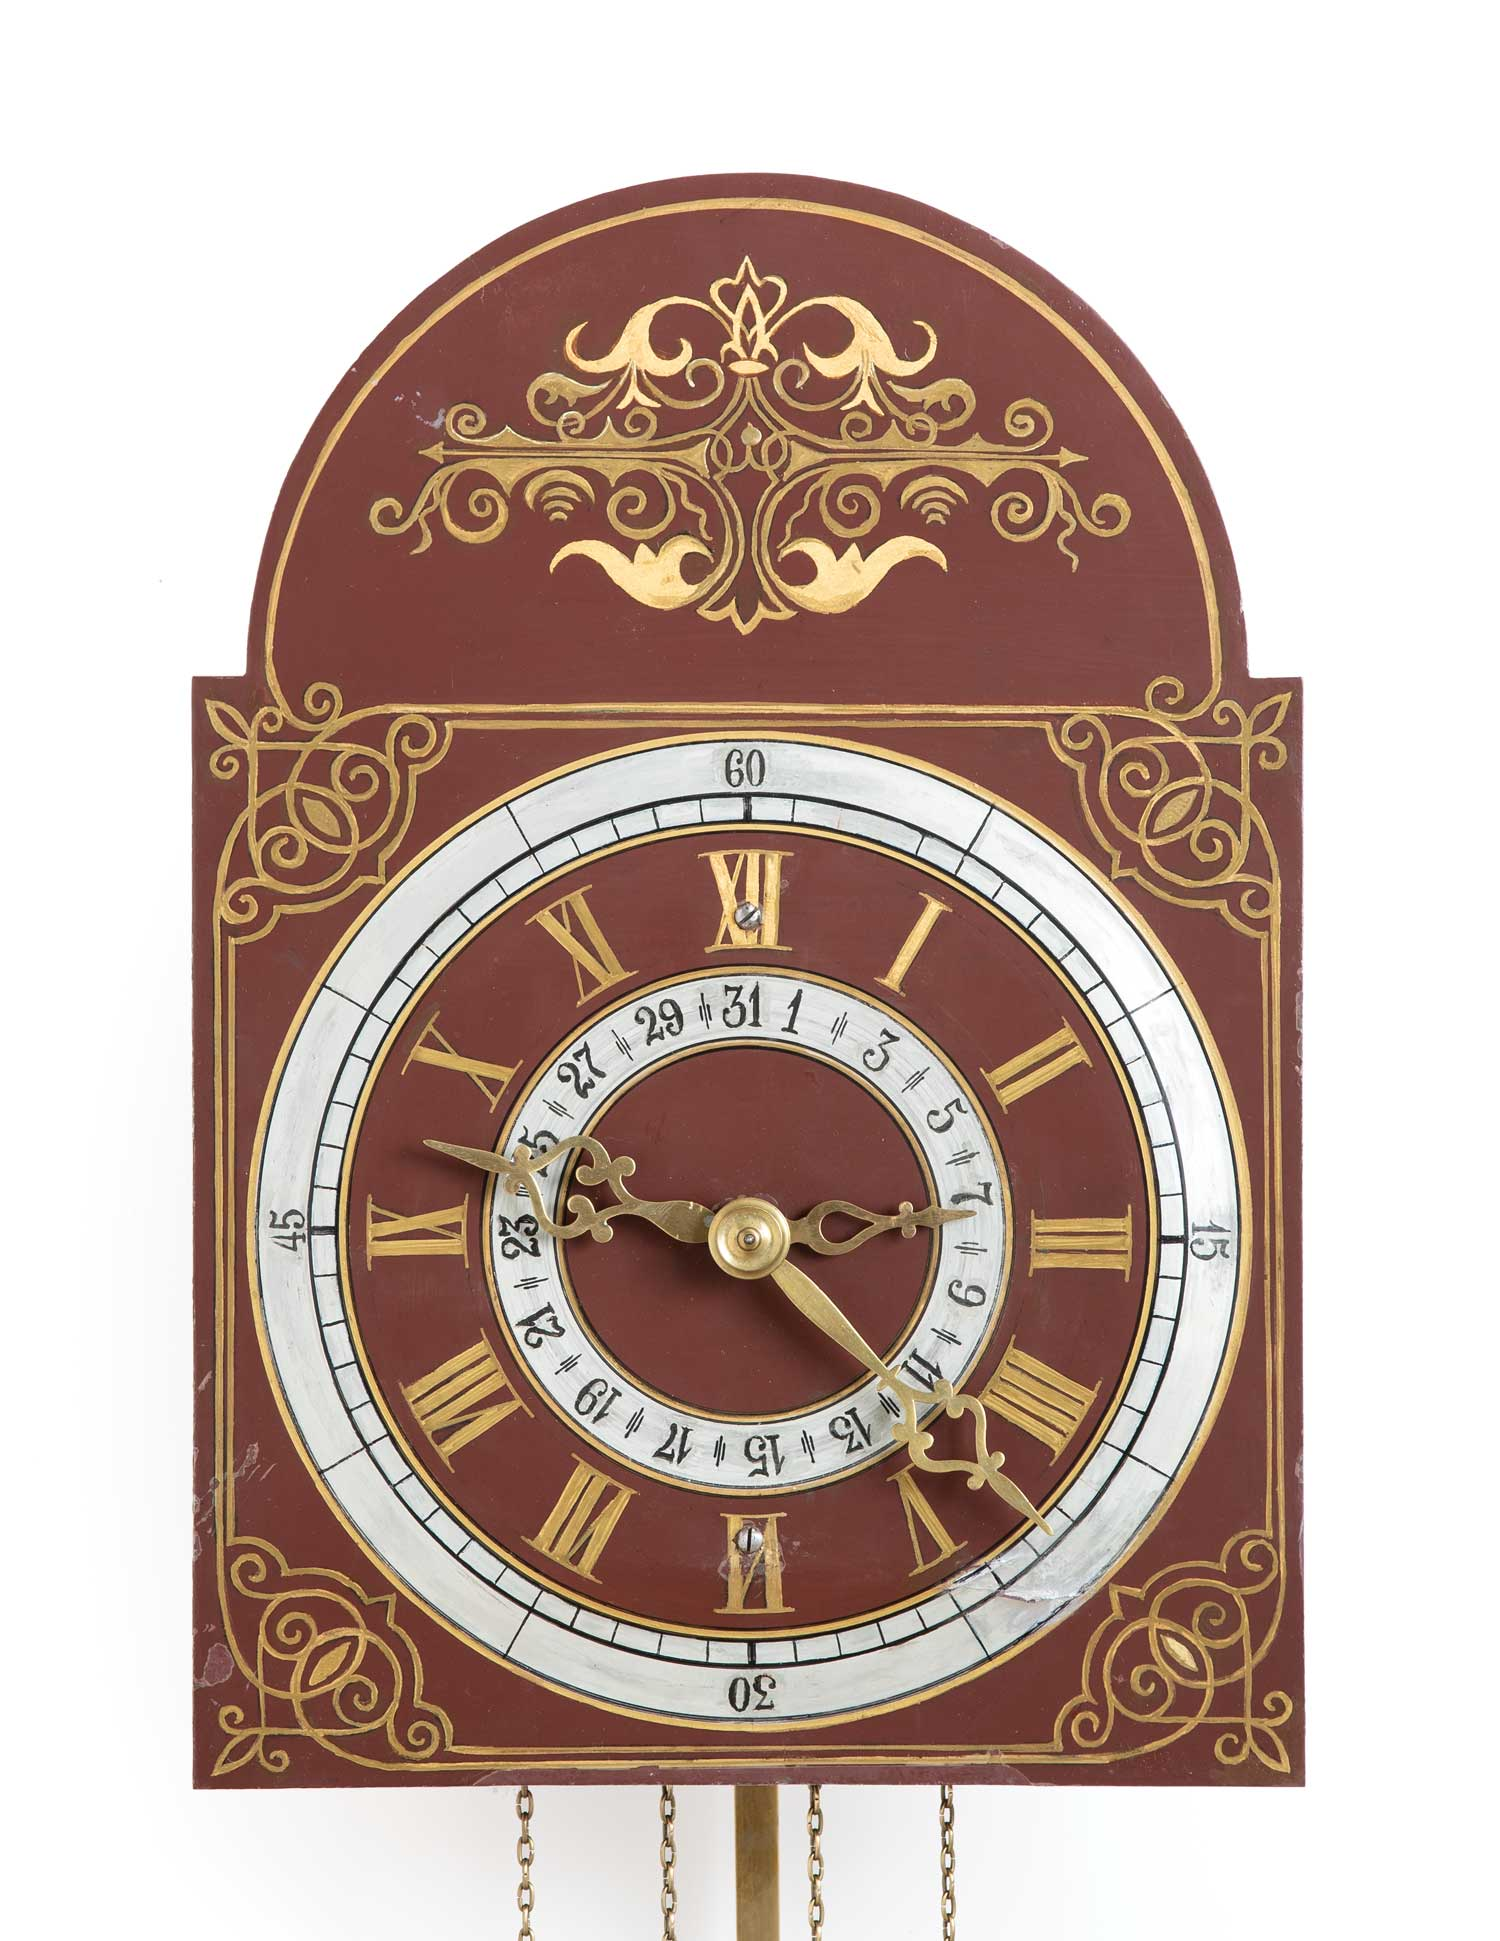 Kroeger Clock no. 1689, 1893 (MC0002)